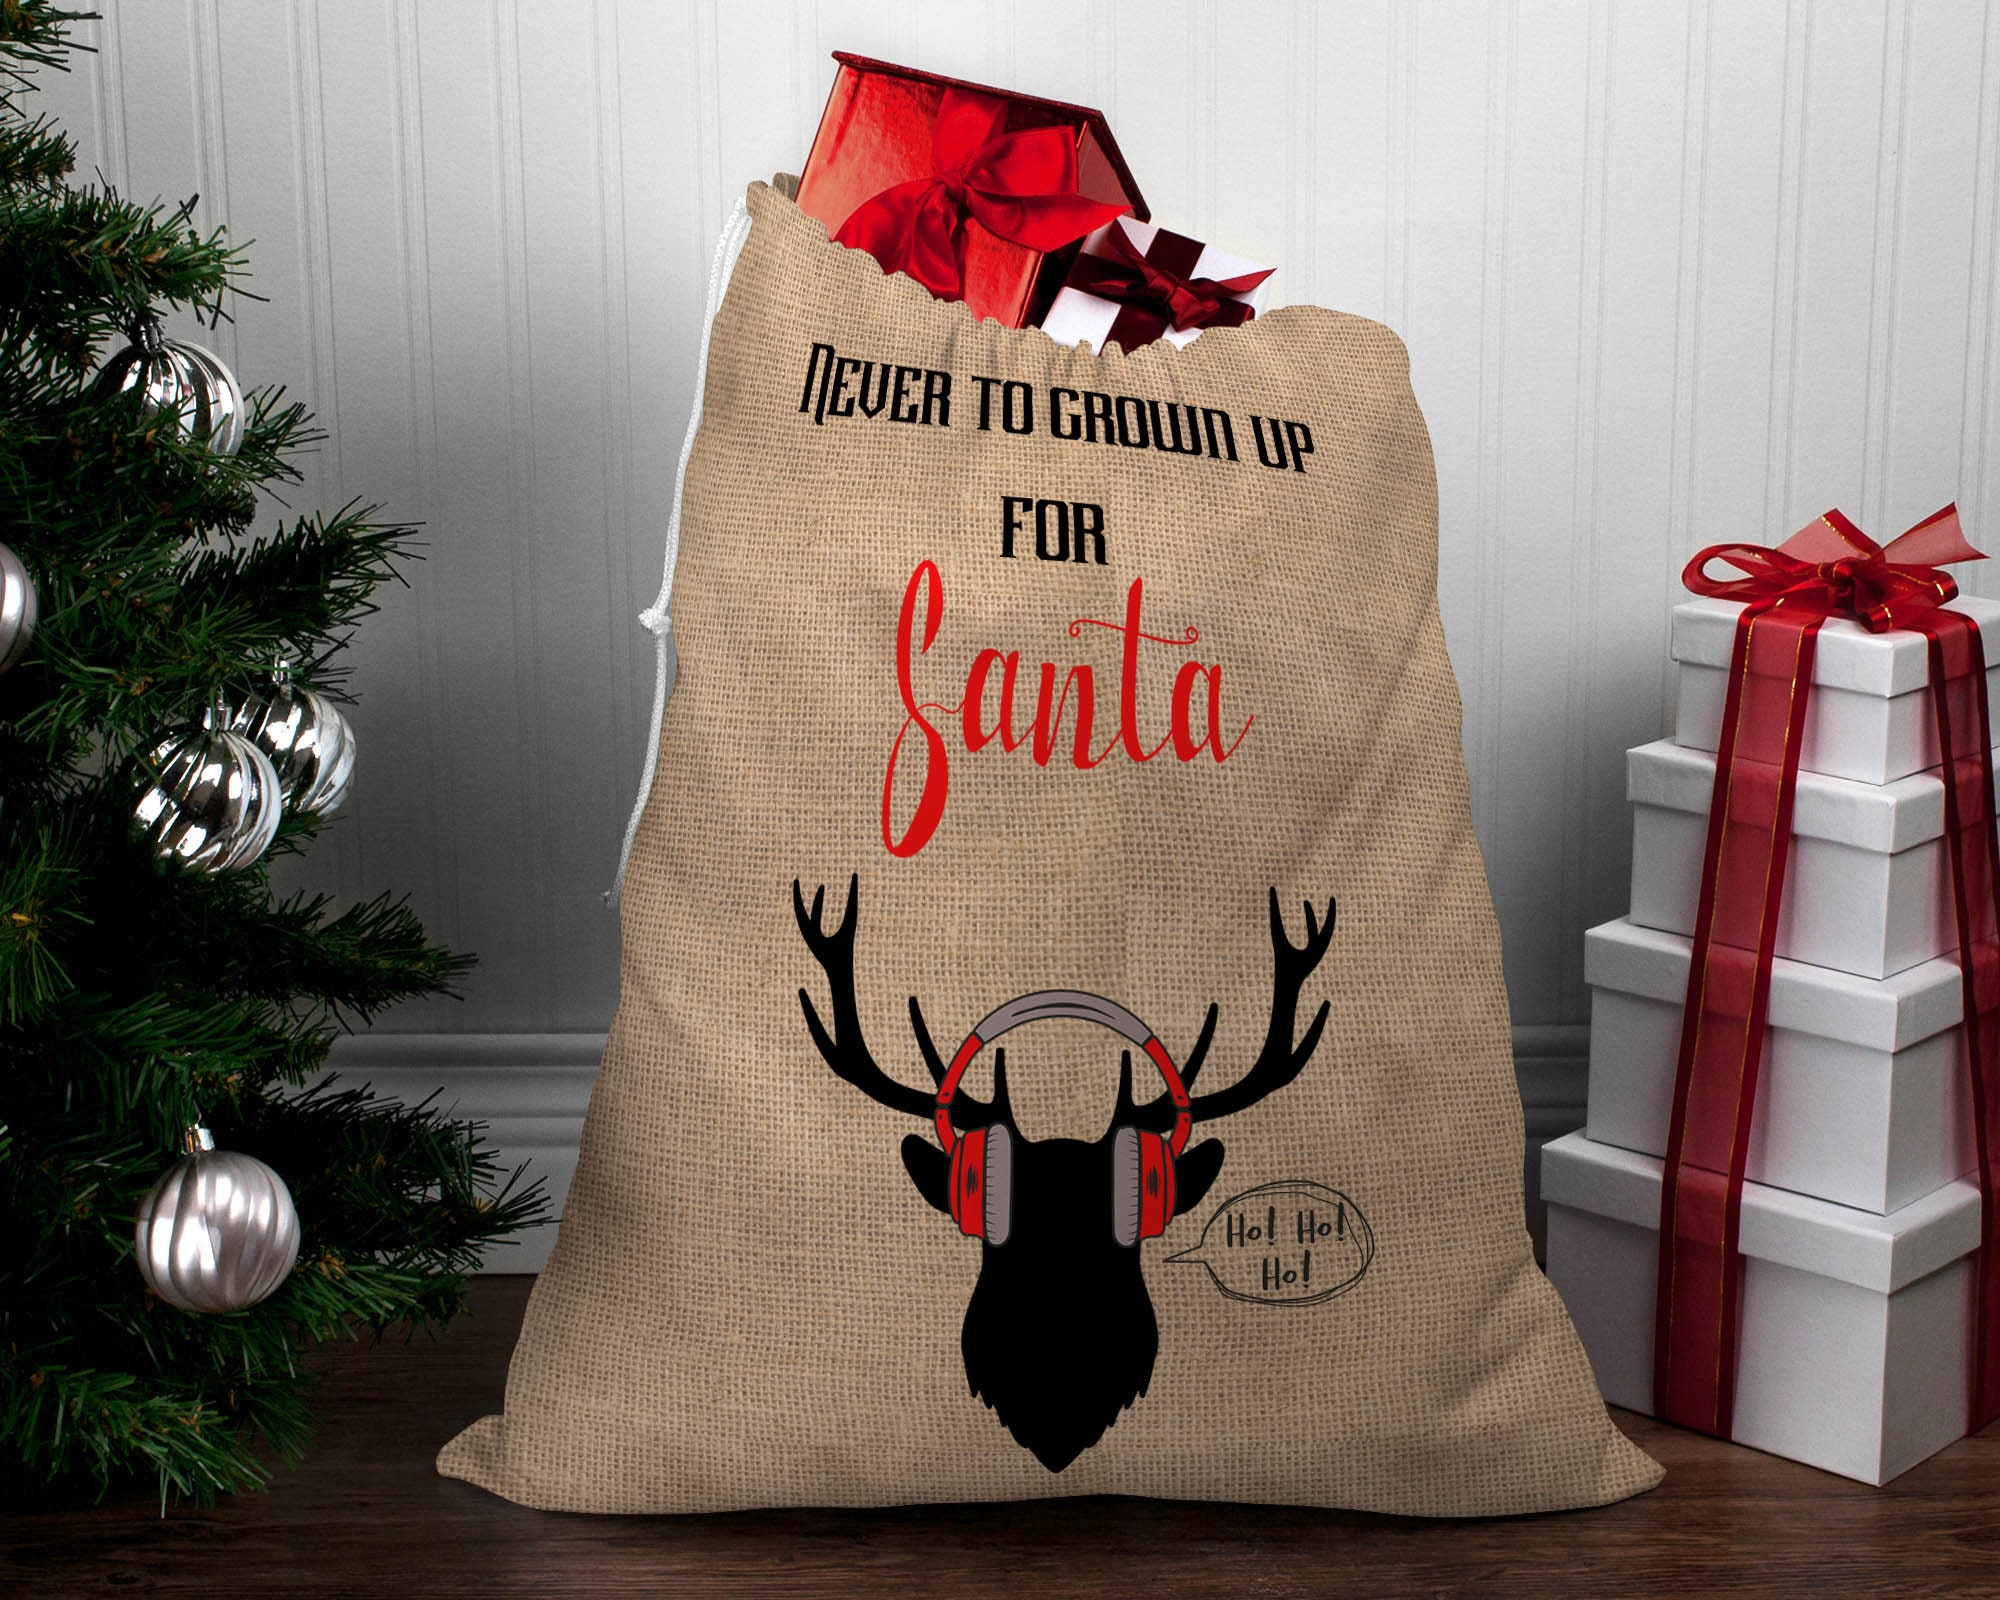 LARGE Hessian Santa Sack - Never too Grown up for Santa!